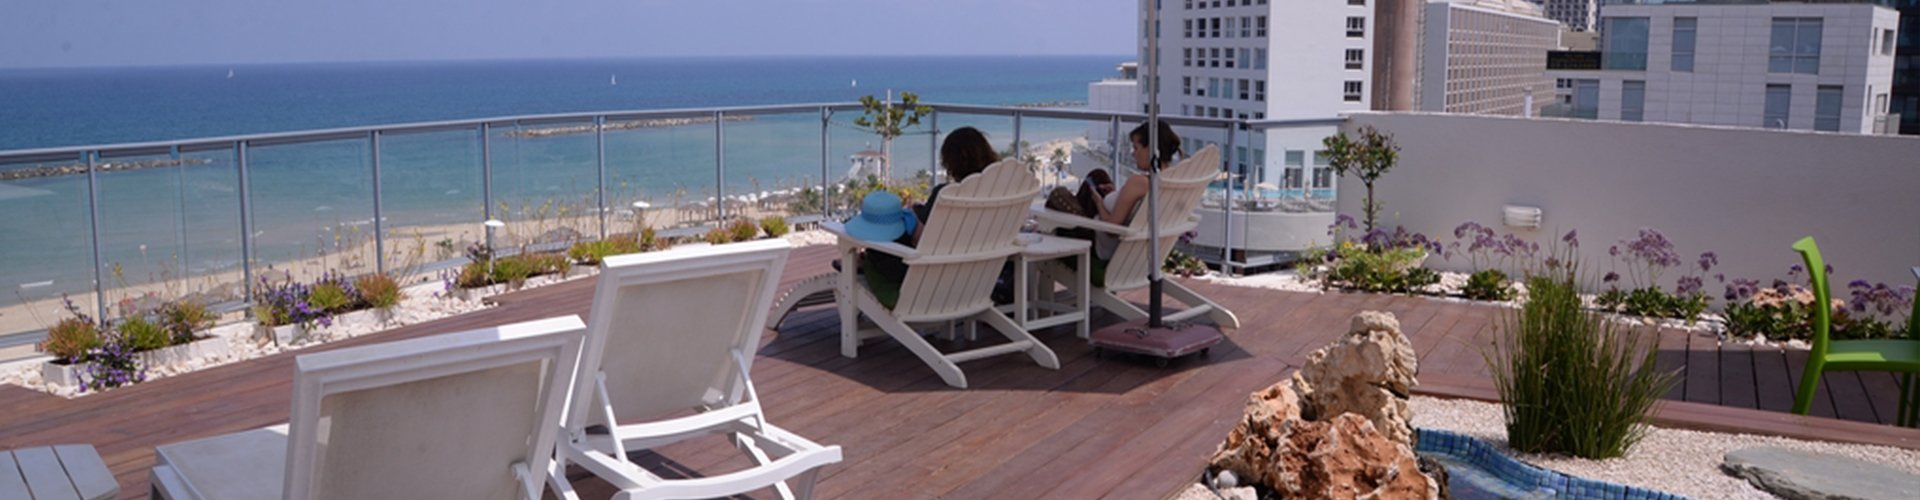 Hotel Tel Aviv Piscine Maxim Hotel Hotel In Tel Aviv Official Website